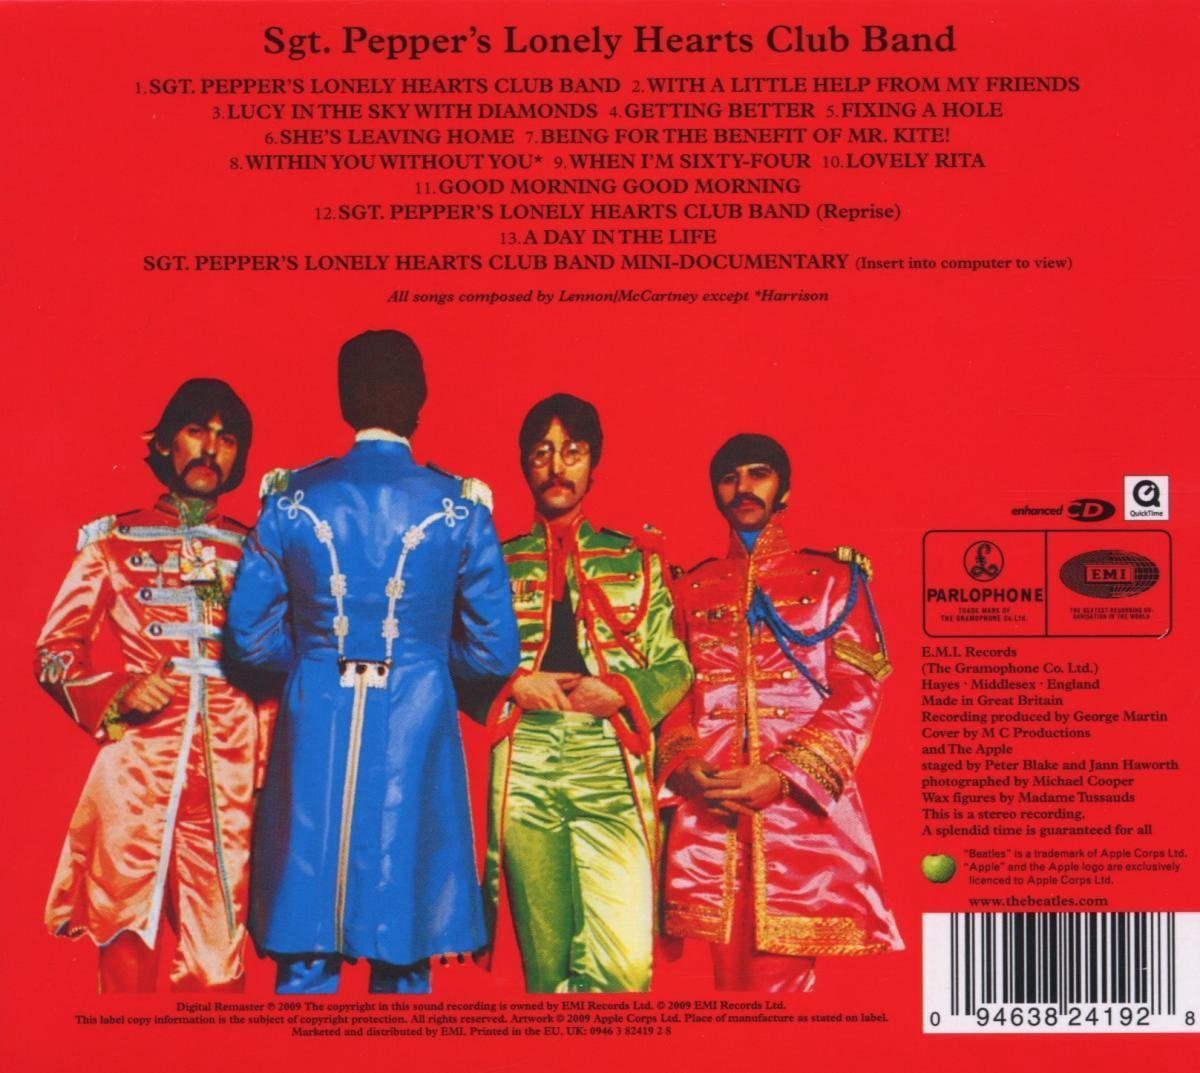 Bol Com Sgt Pepper S Lonely Hearts Club Band Remastered The Beatles Cd Album Muziek